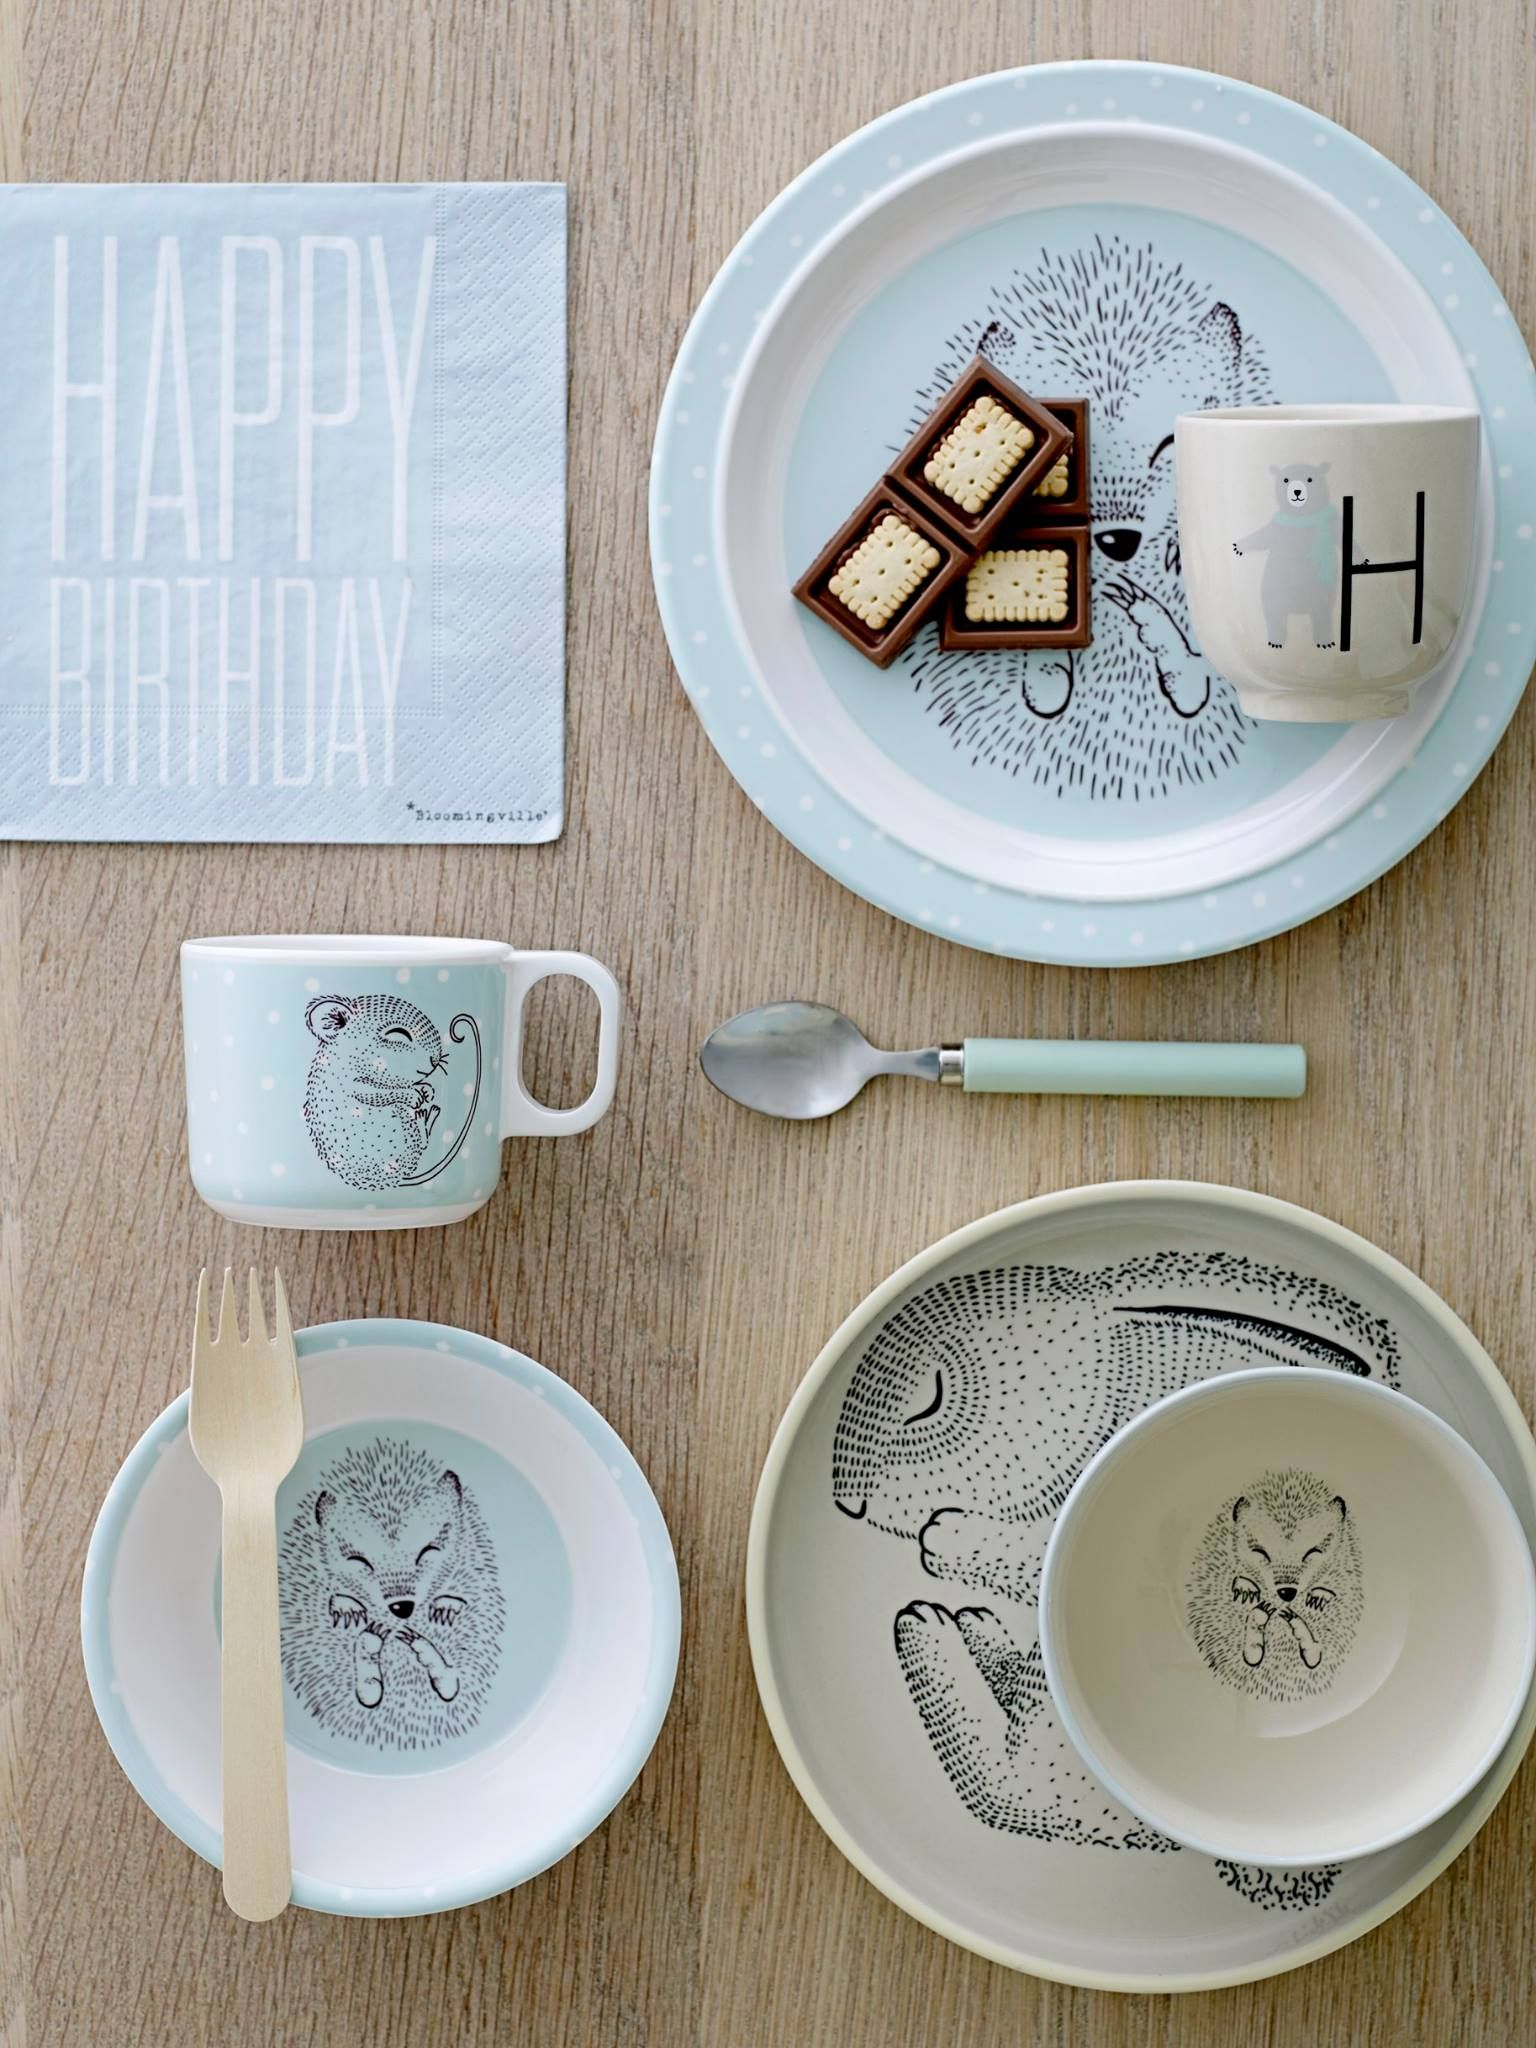 Find this Pin and more on Kids by psikhouvanjou. & Melamine u0026 ceramic Bloomingville mini | Kids | Pinterest | Kids ...